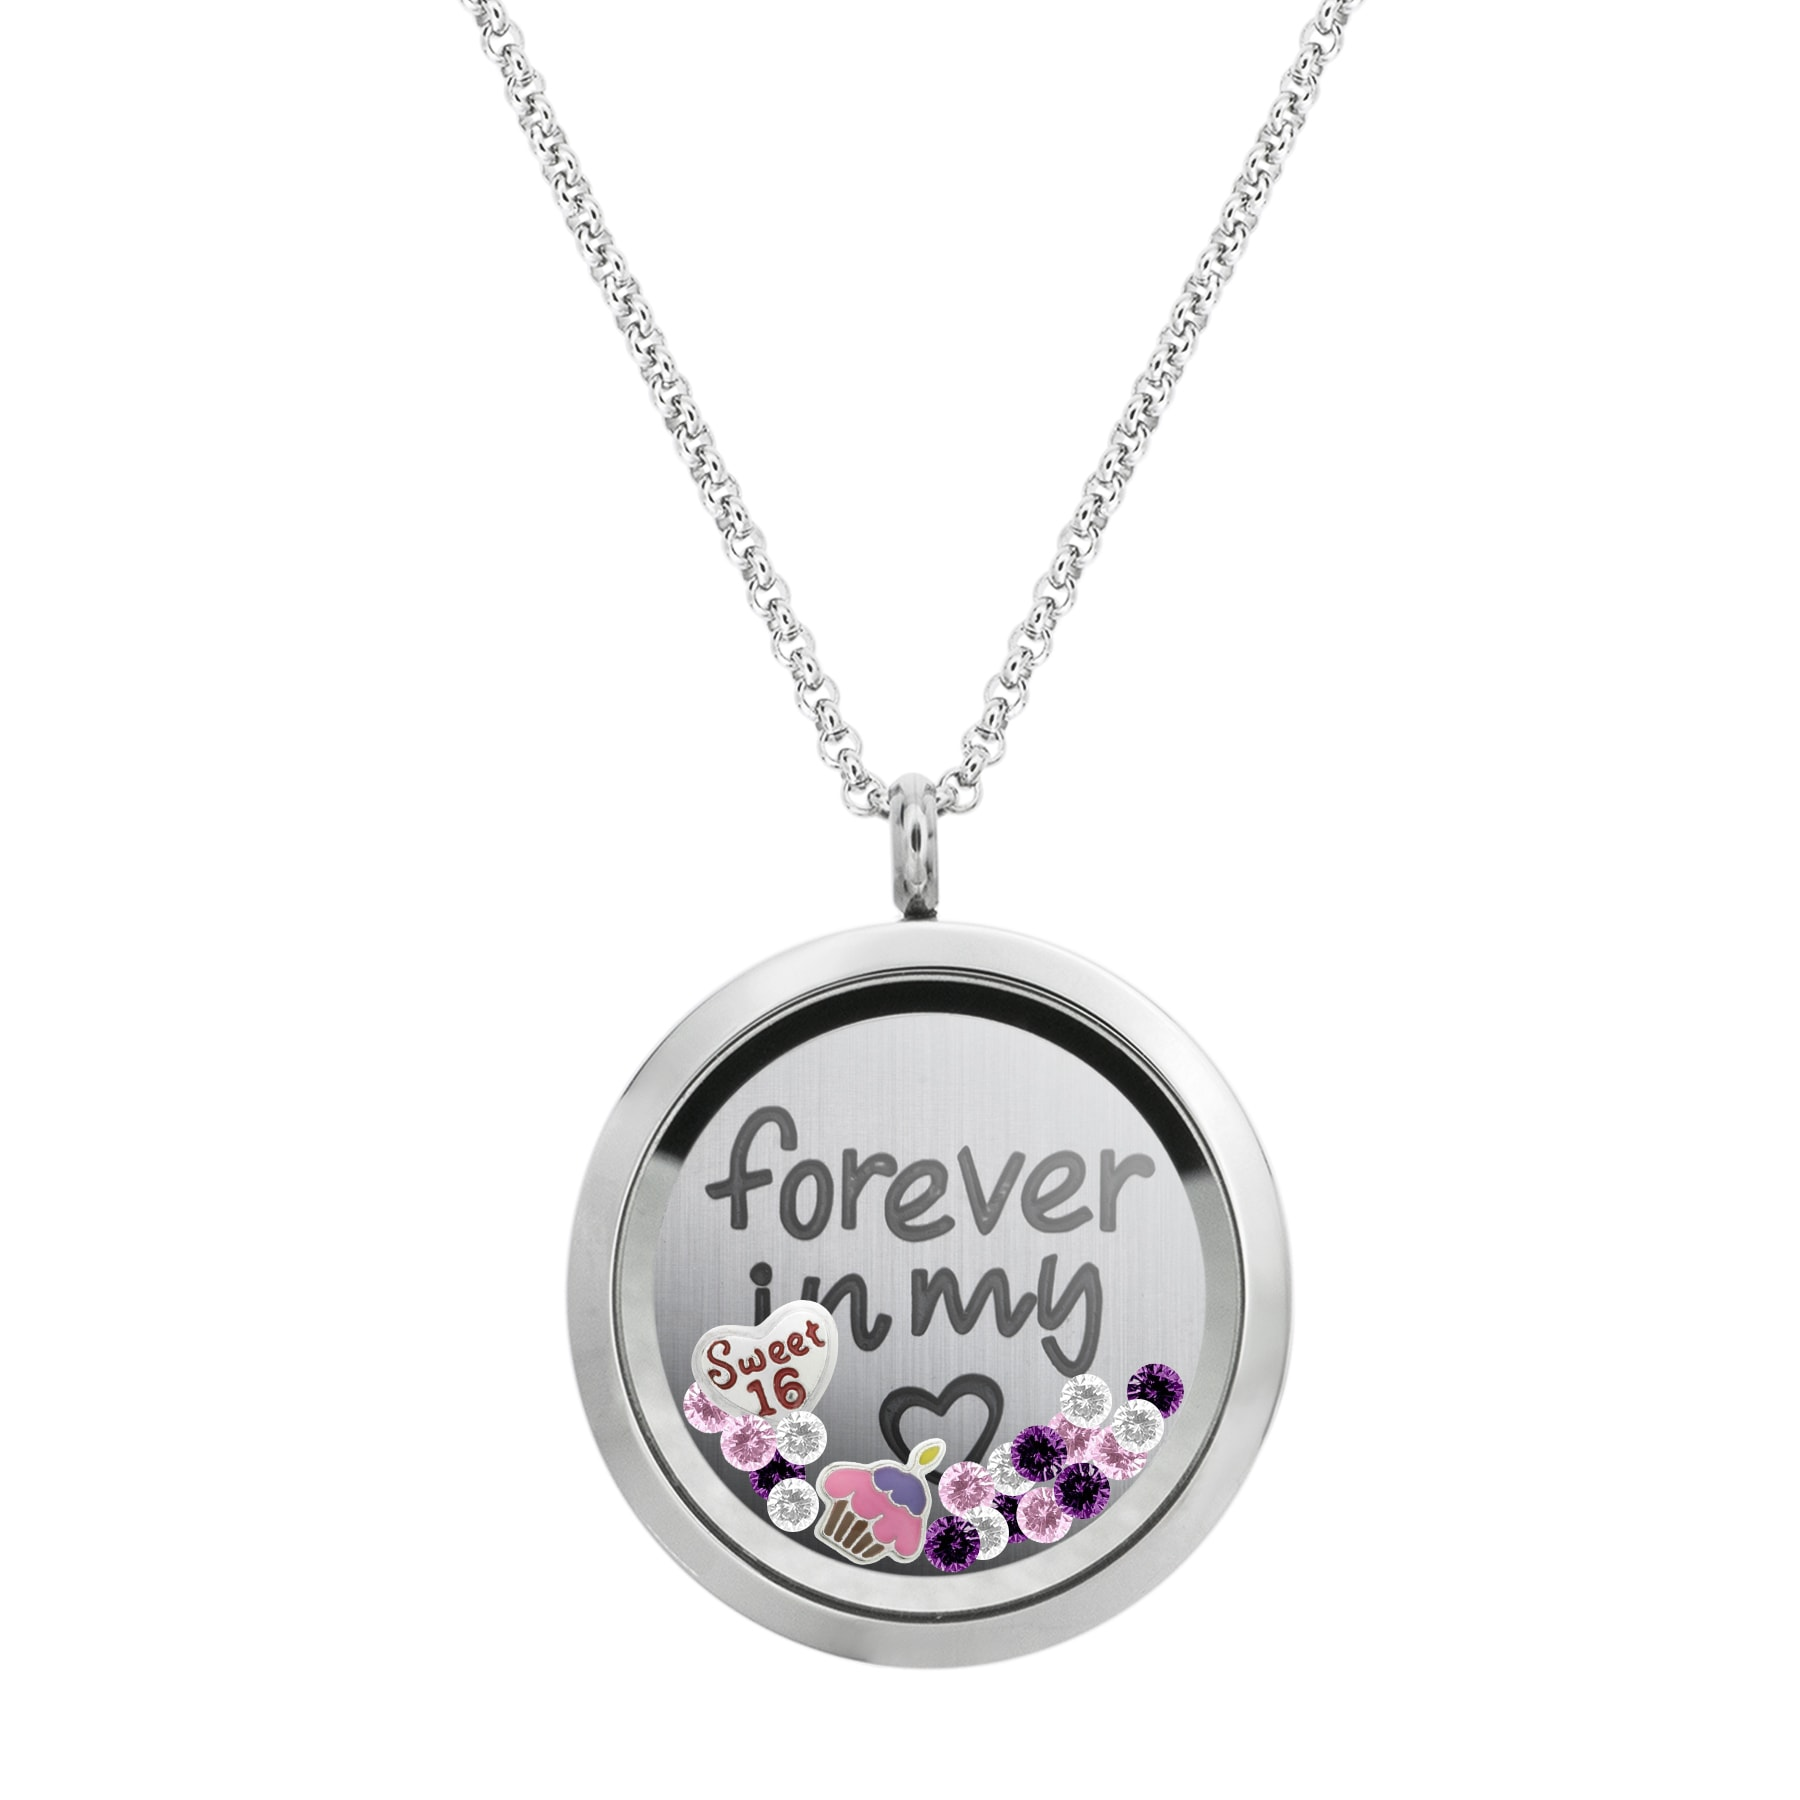 women locket petite pandora john zoom lockets necklace birthstone december charm